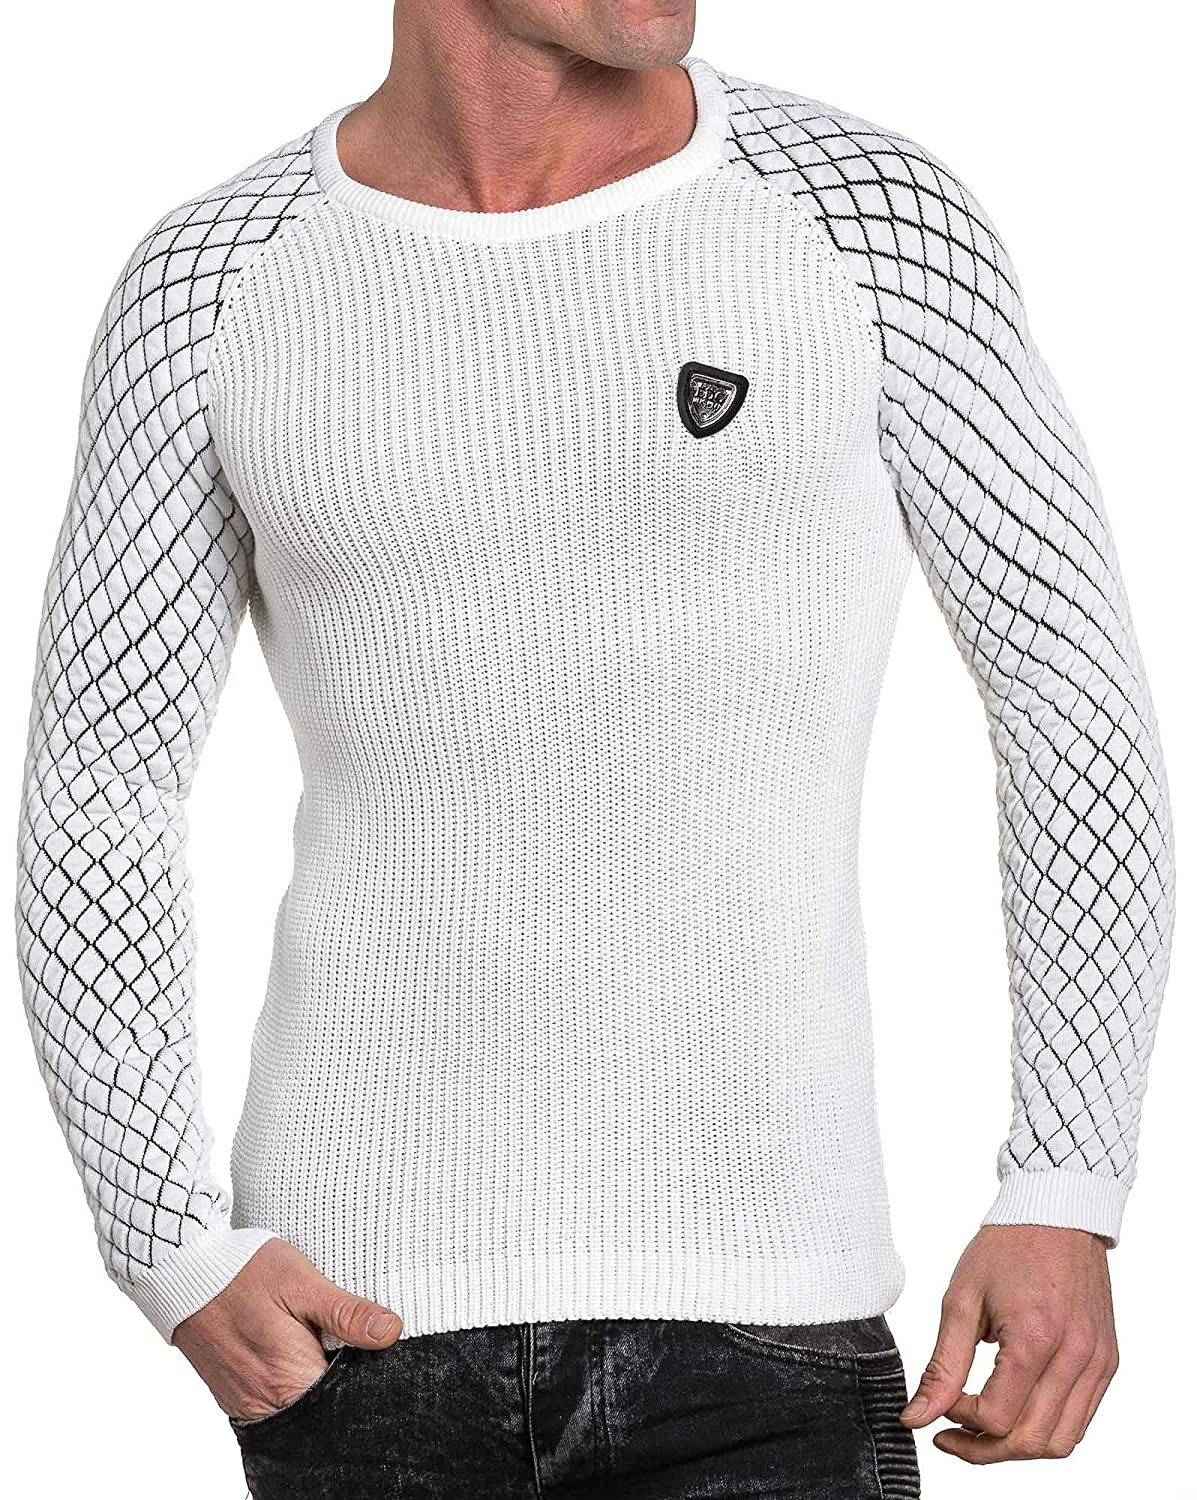 BLZ jeans - white ribbed sweater sleeves tend man